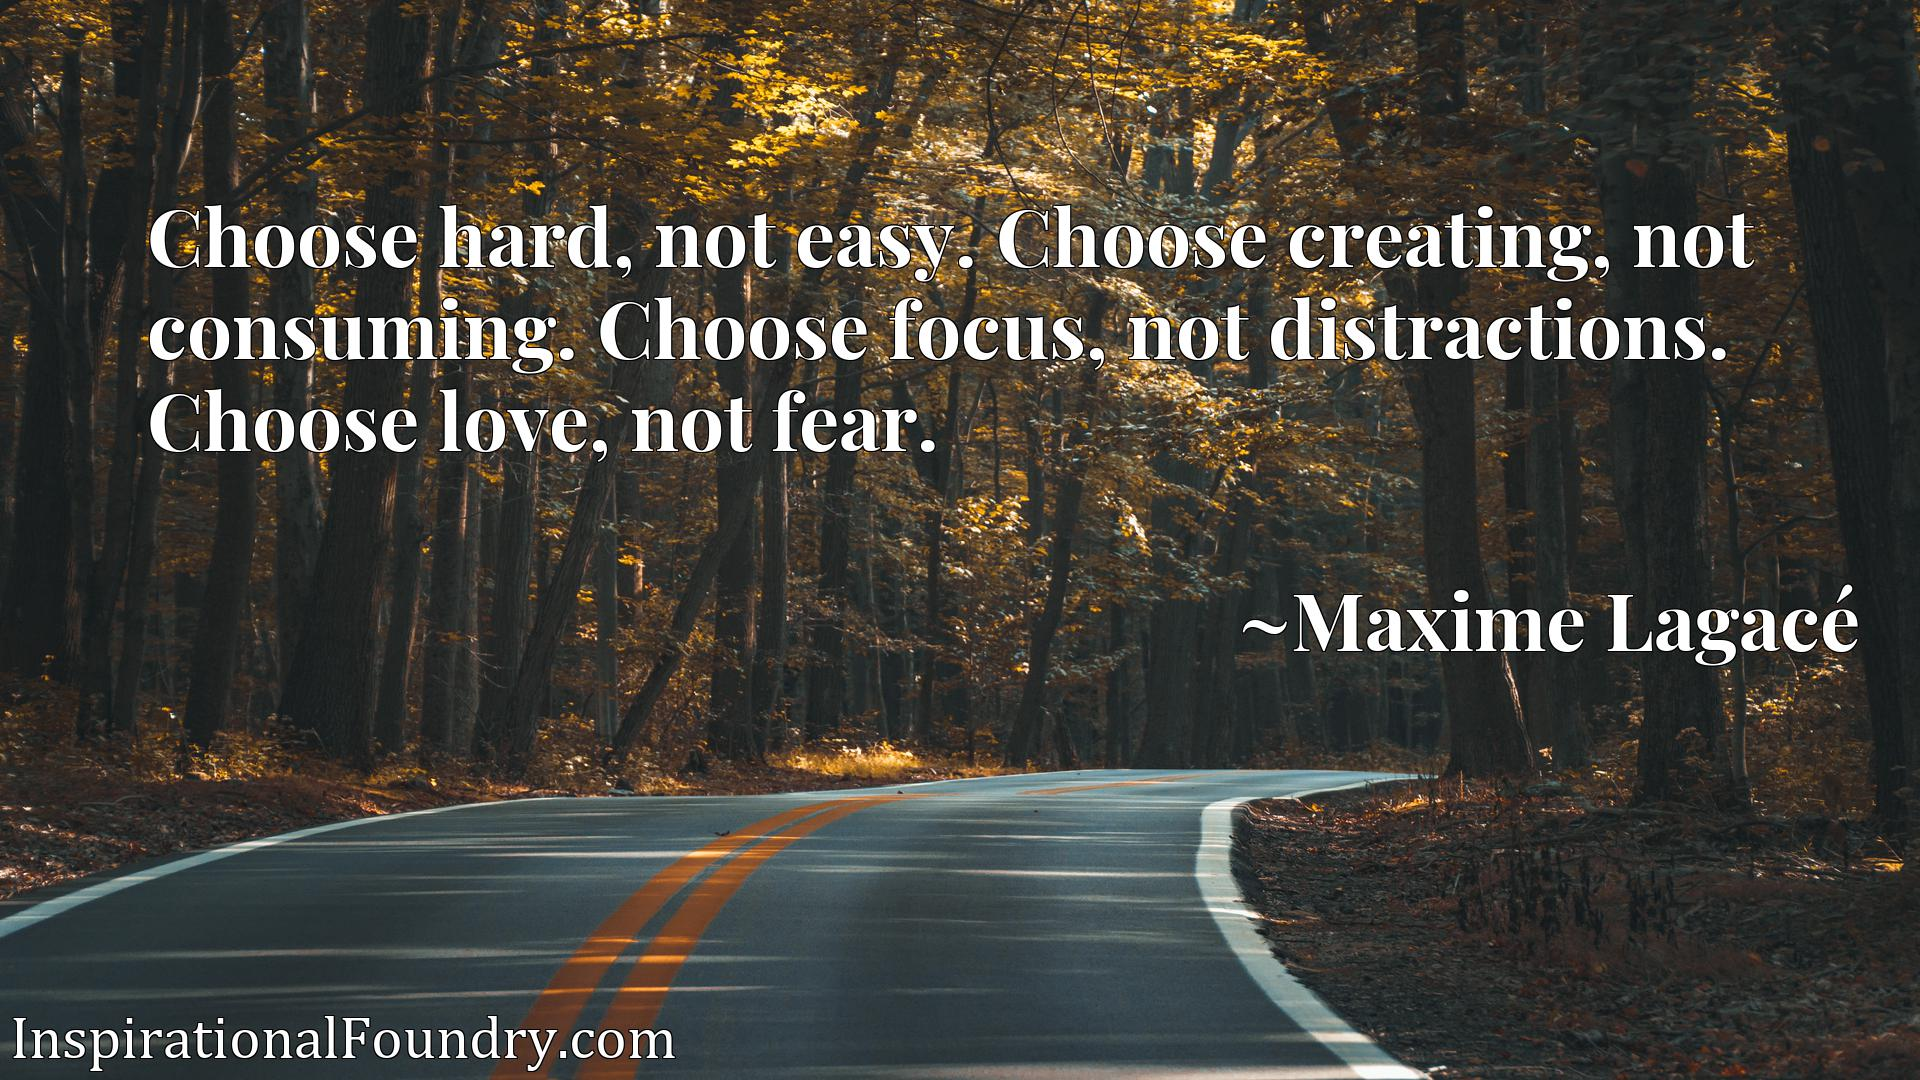 Choose hard, not easy. Choose creating, not consuming. Choose focus, not distractions. Choose love, not fear.